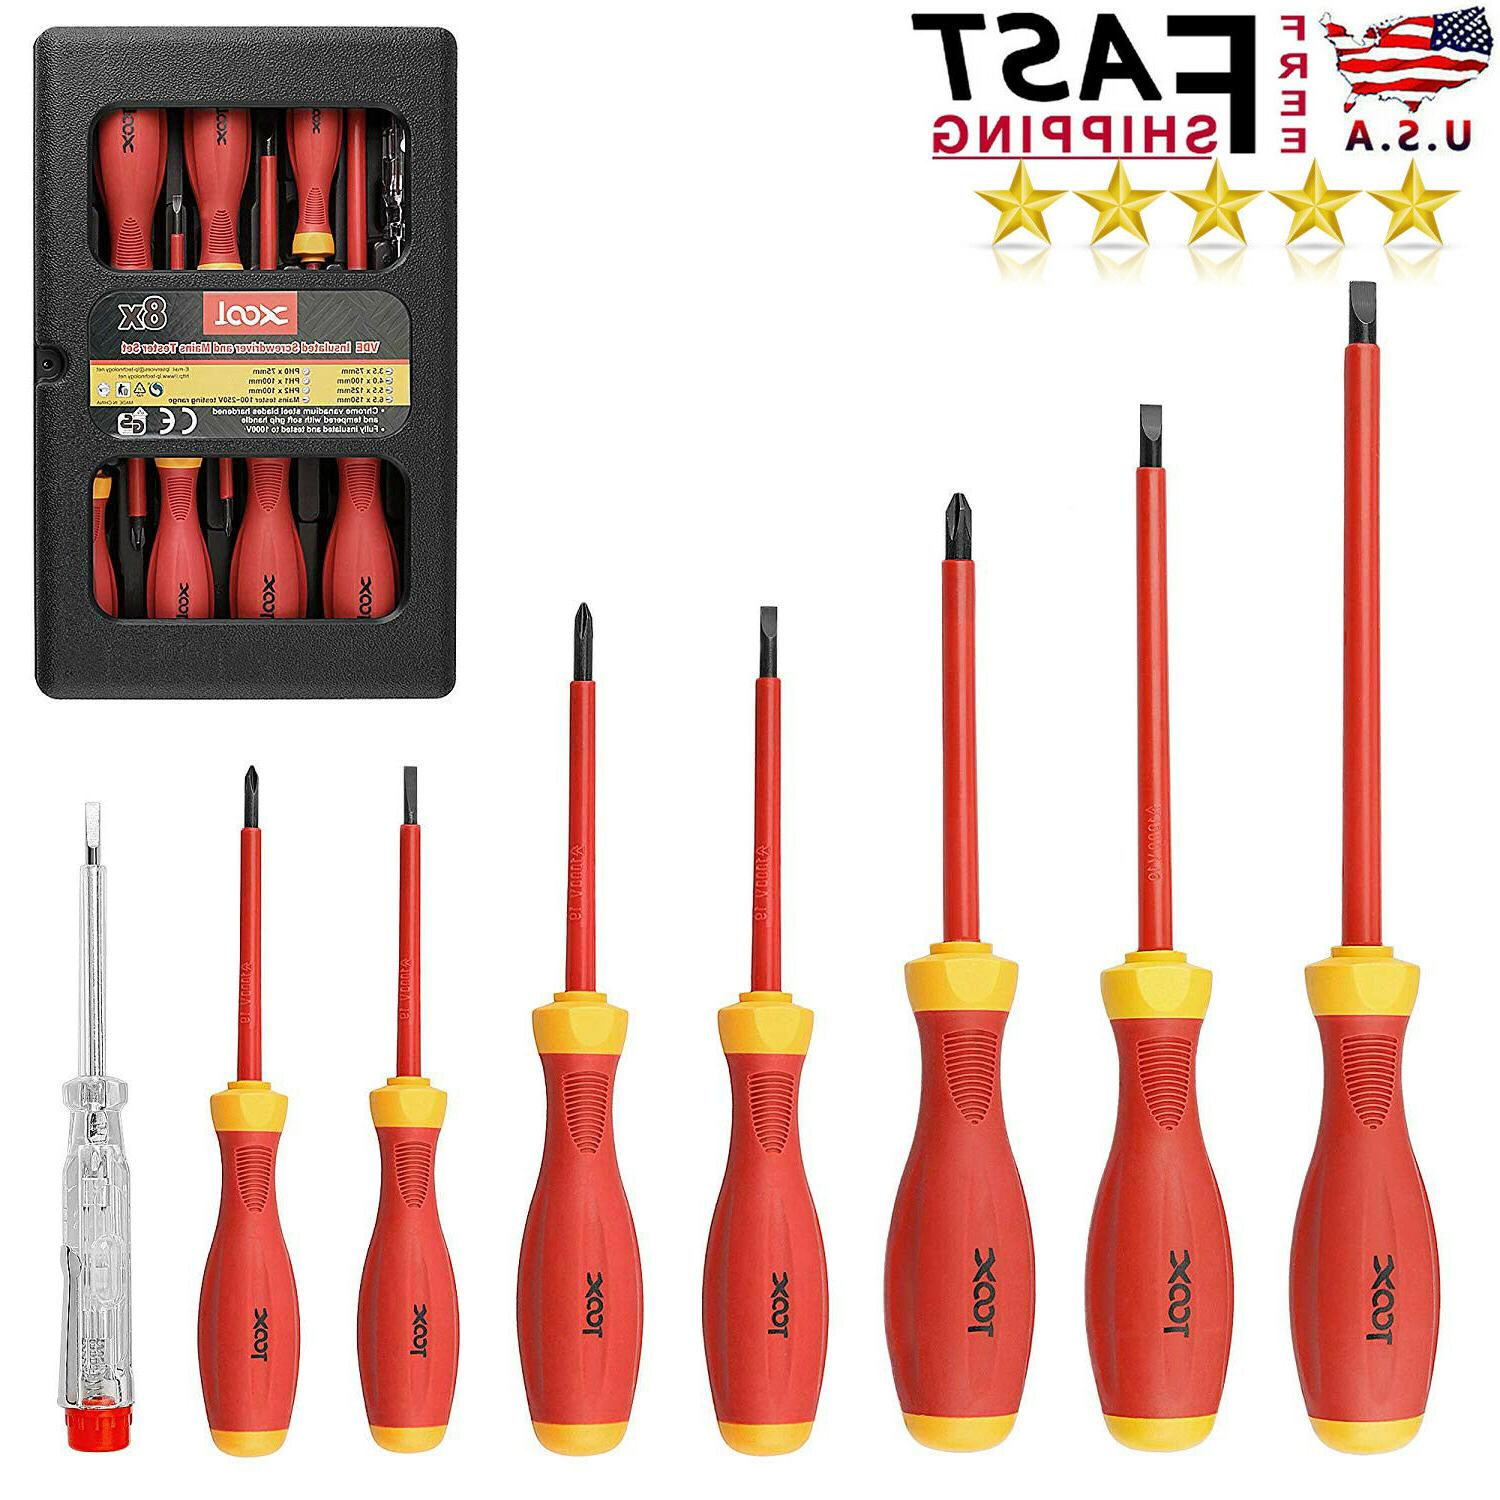 8pcs electrician insulated magnetic hand screwdriver set